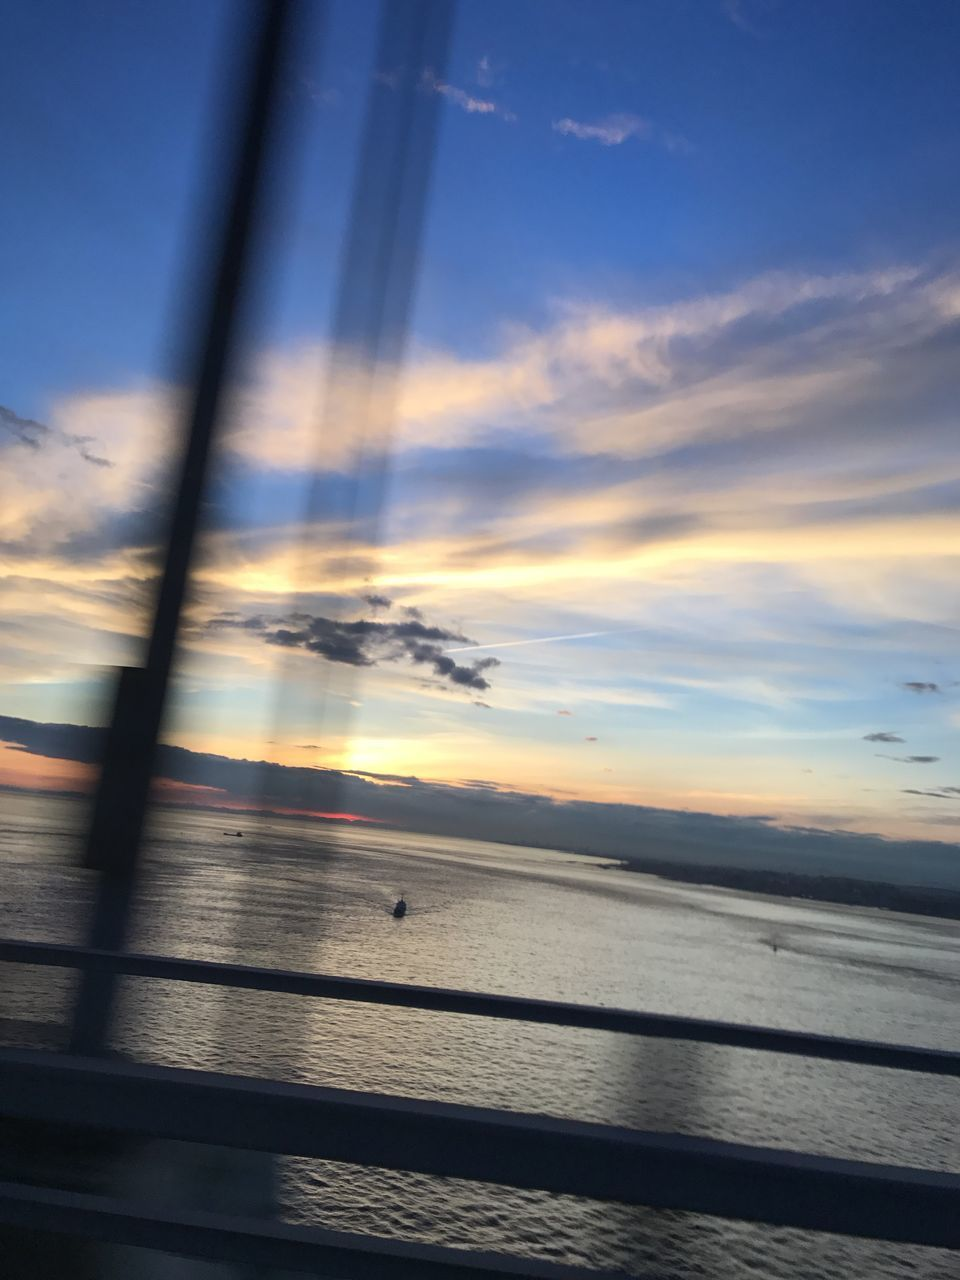 BLURRED MOTION OF SEA AGAINST SKY AT SUNSET